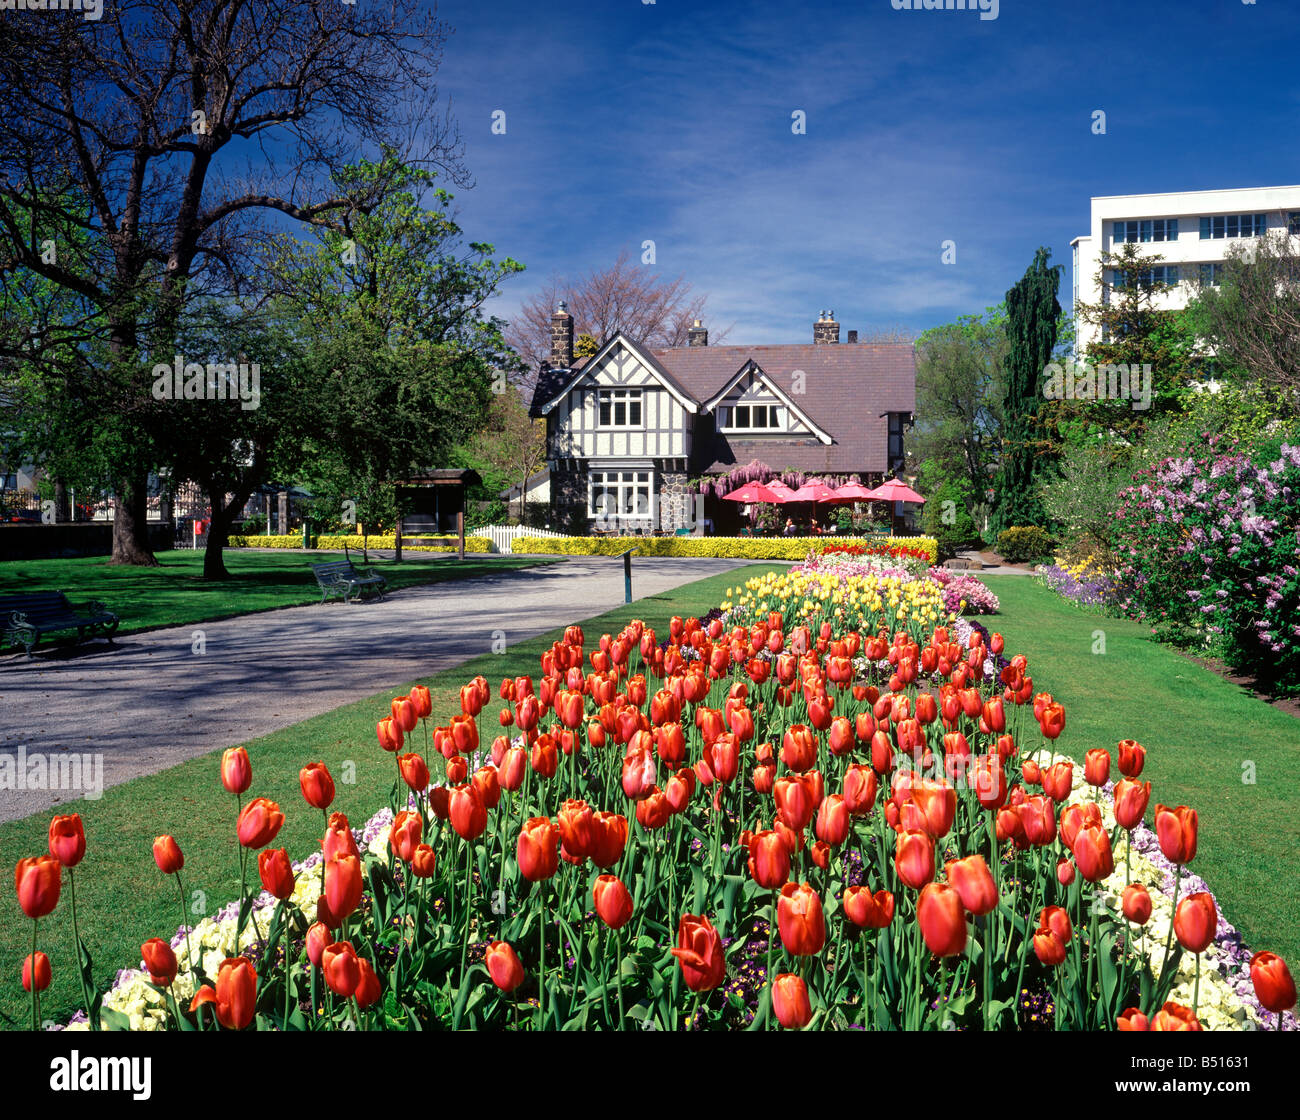 A Scenic Photo In Christchurch New Zealand Of The Spring Flowers In